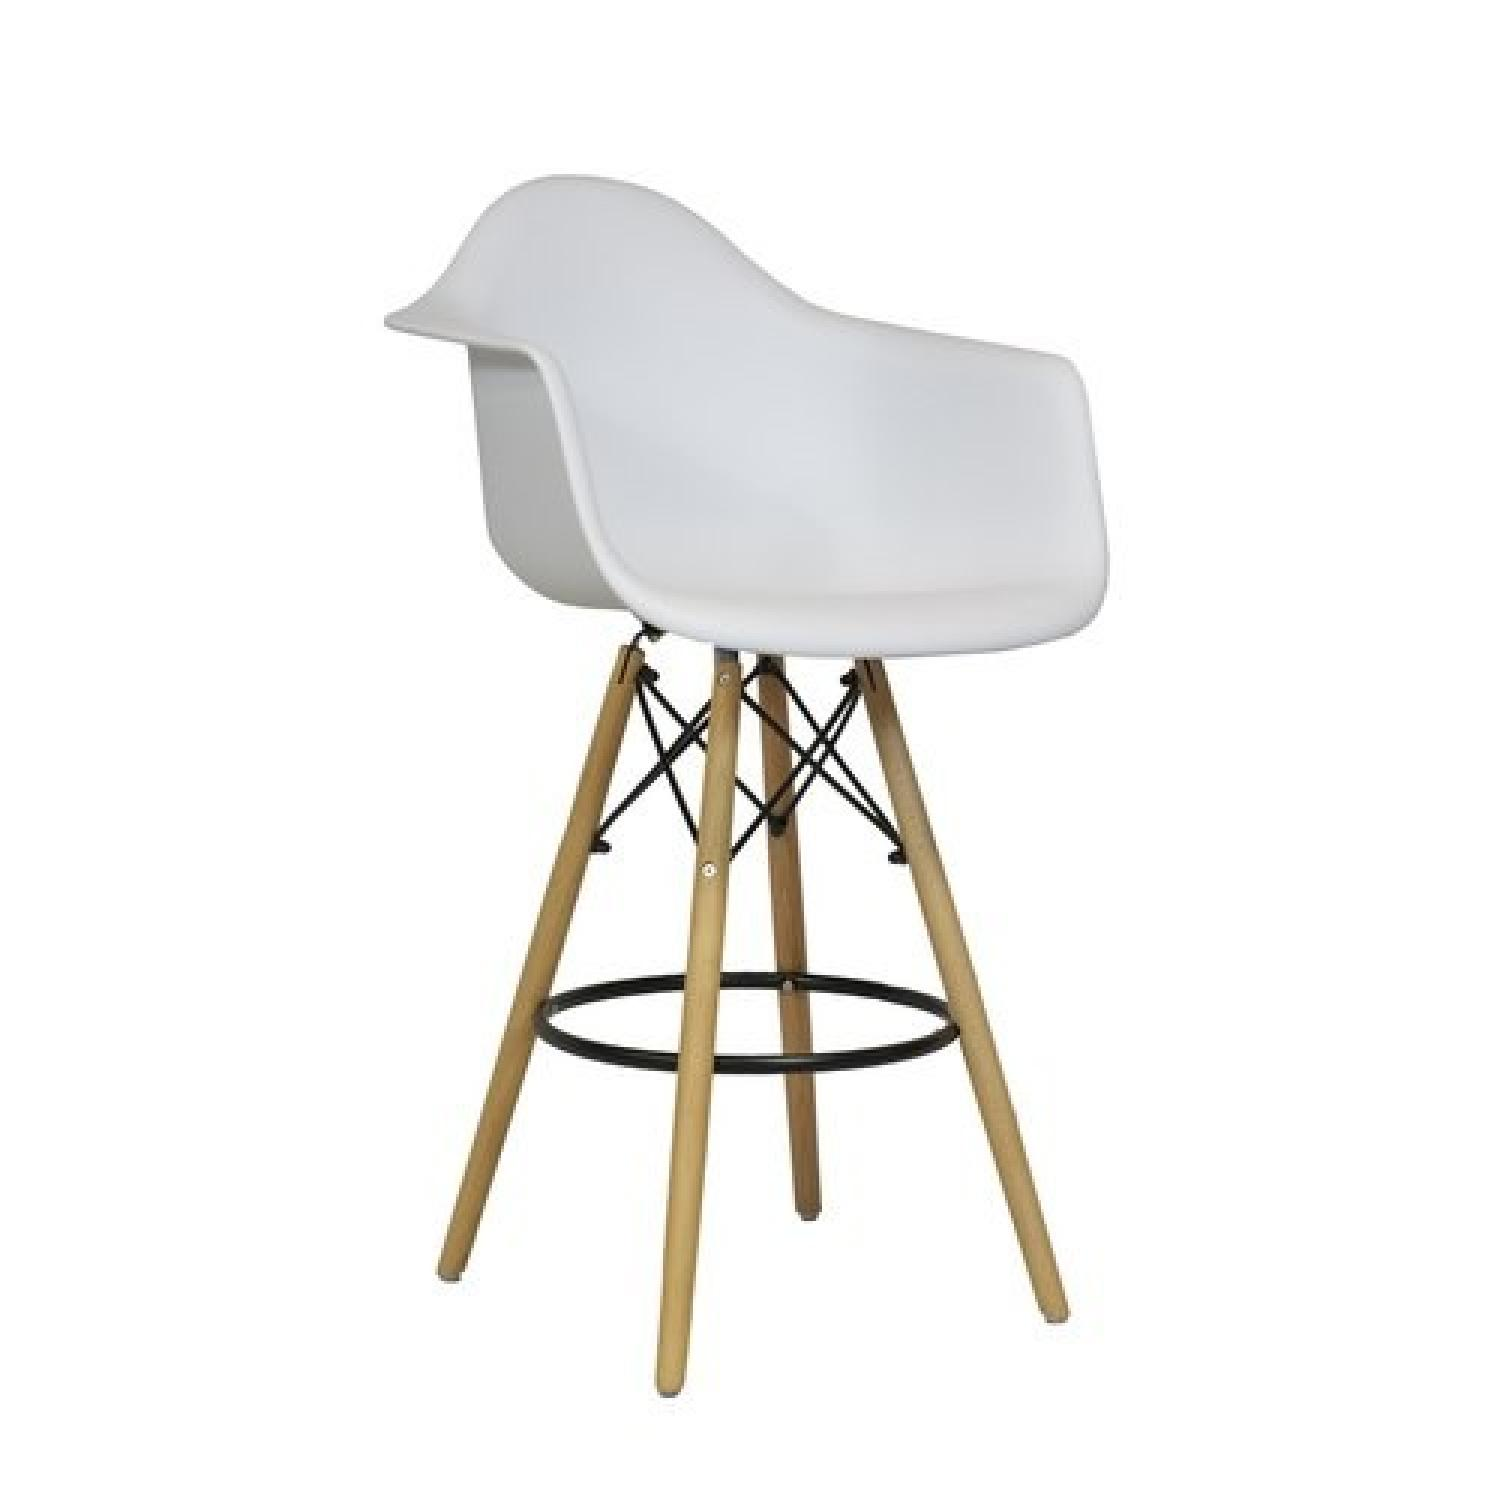 Design Tree Home White Eames Style Counter Stools